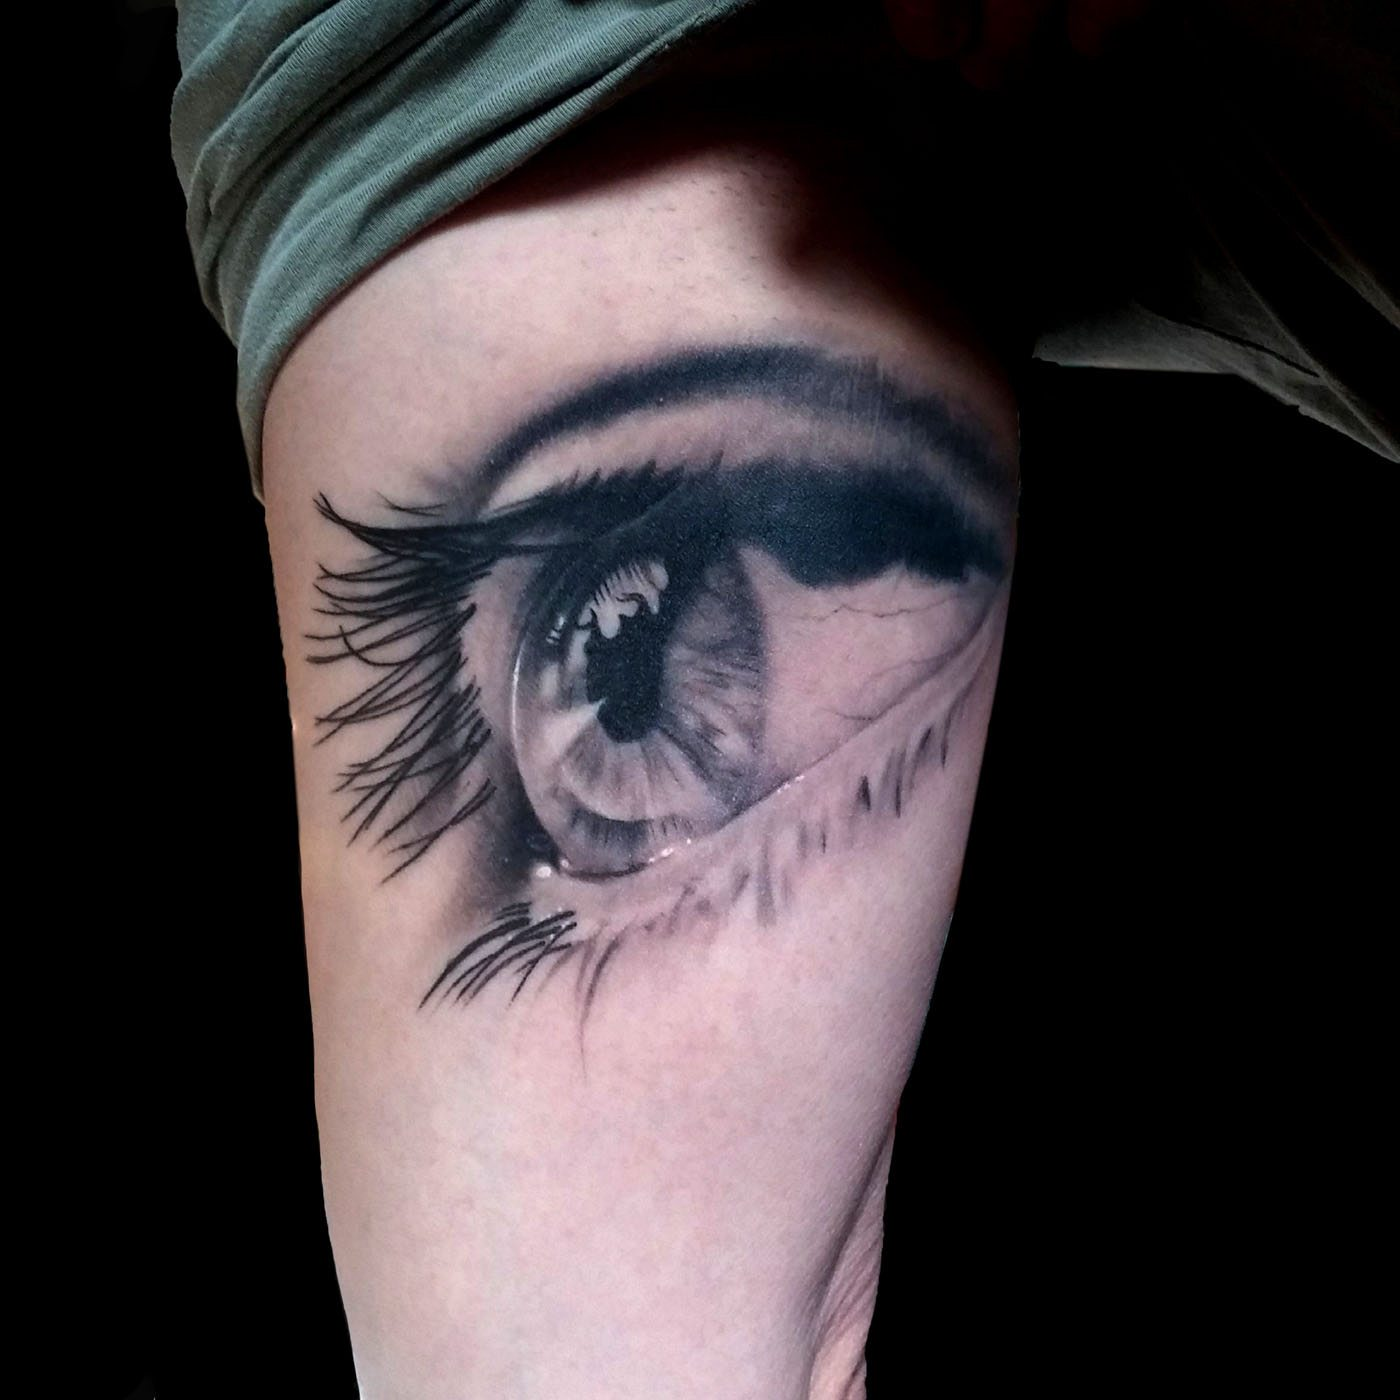 Black & Grey Realistic/Realism Tattoo - Slave to the Needle